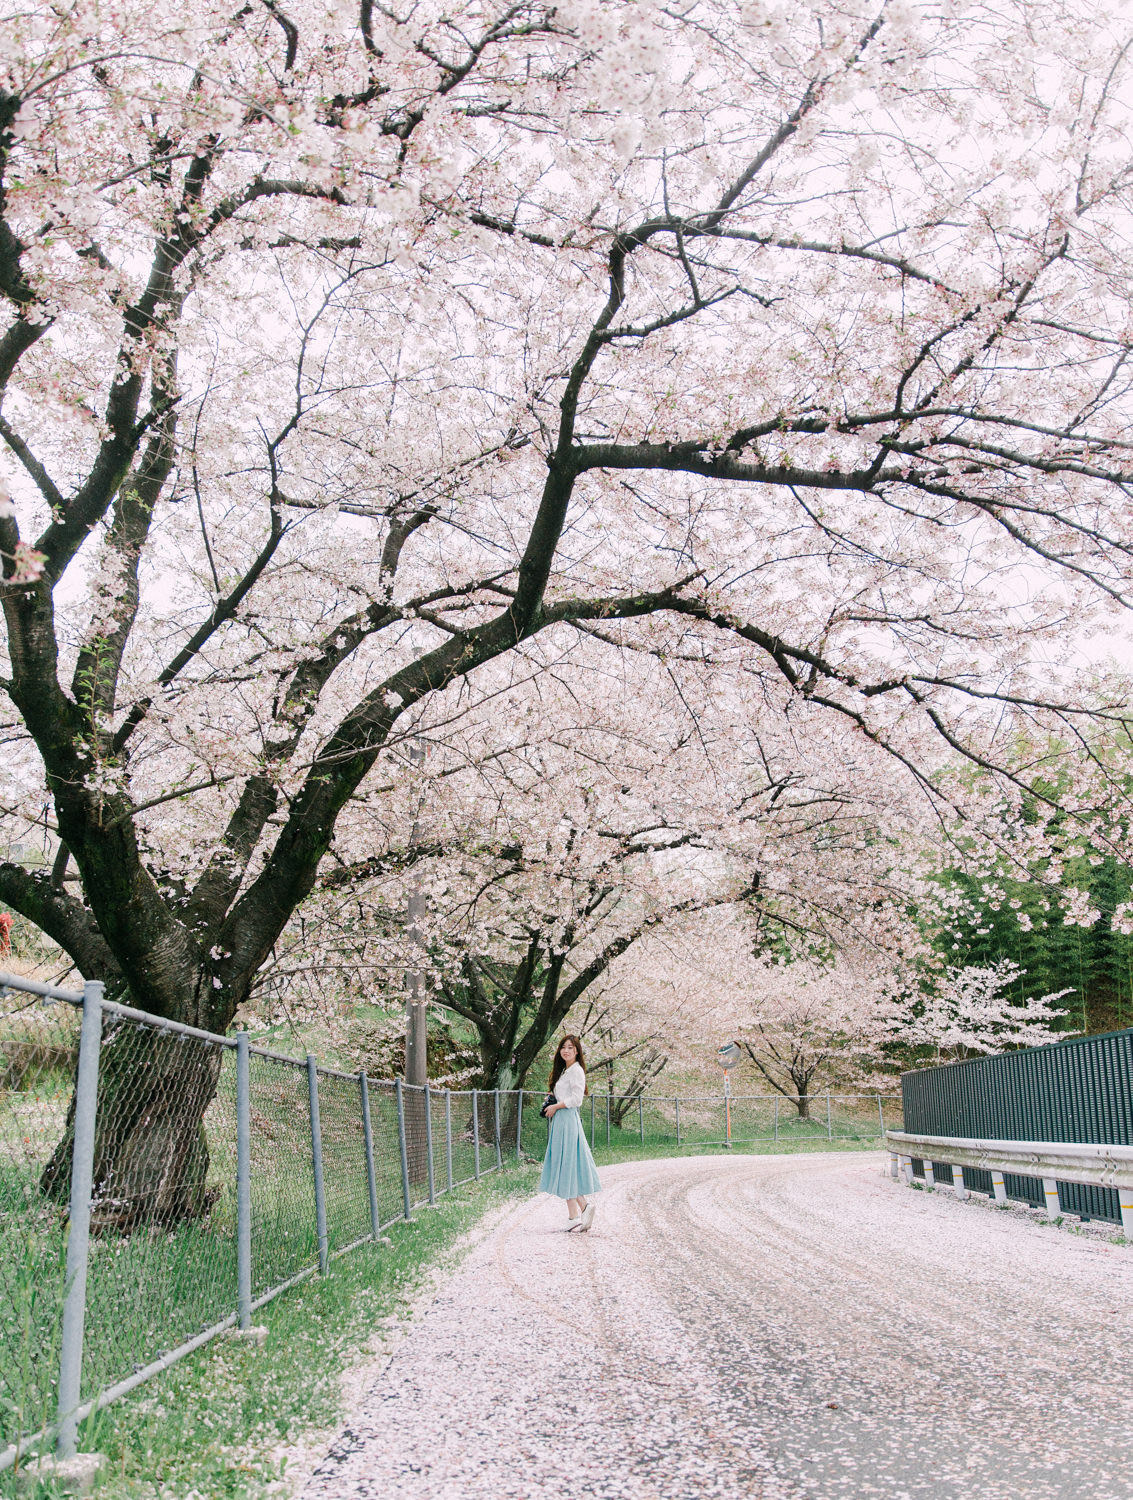 Best_Kyoto_Cherry_Blossom_Photoshoot_Location_by_CHYMO_&_MORE_Ph